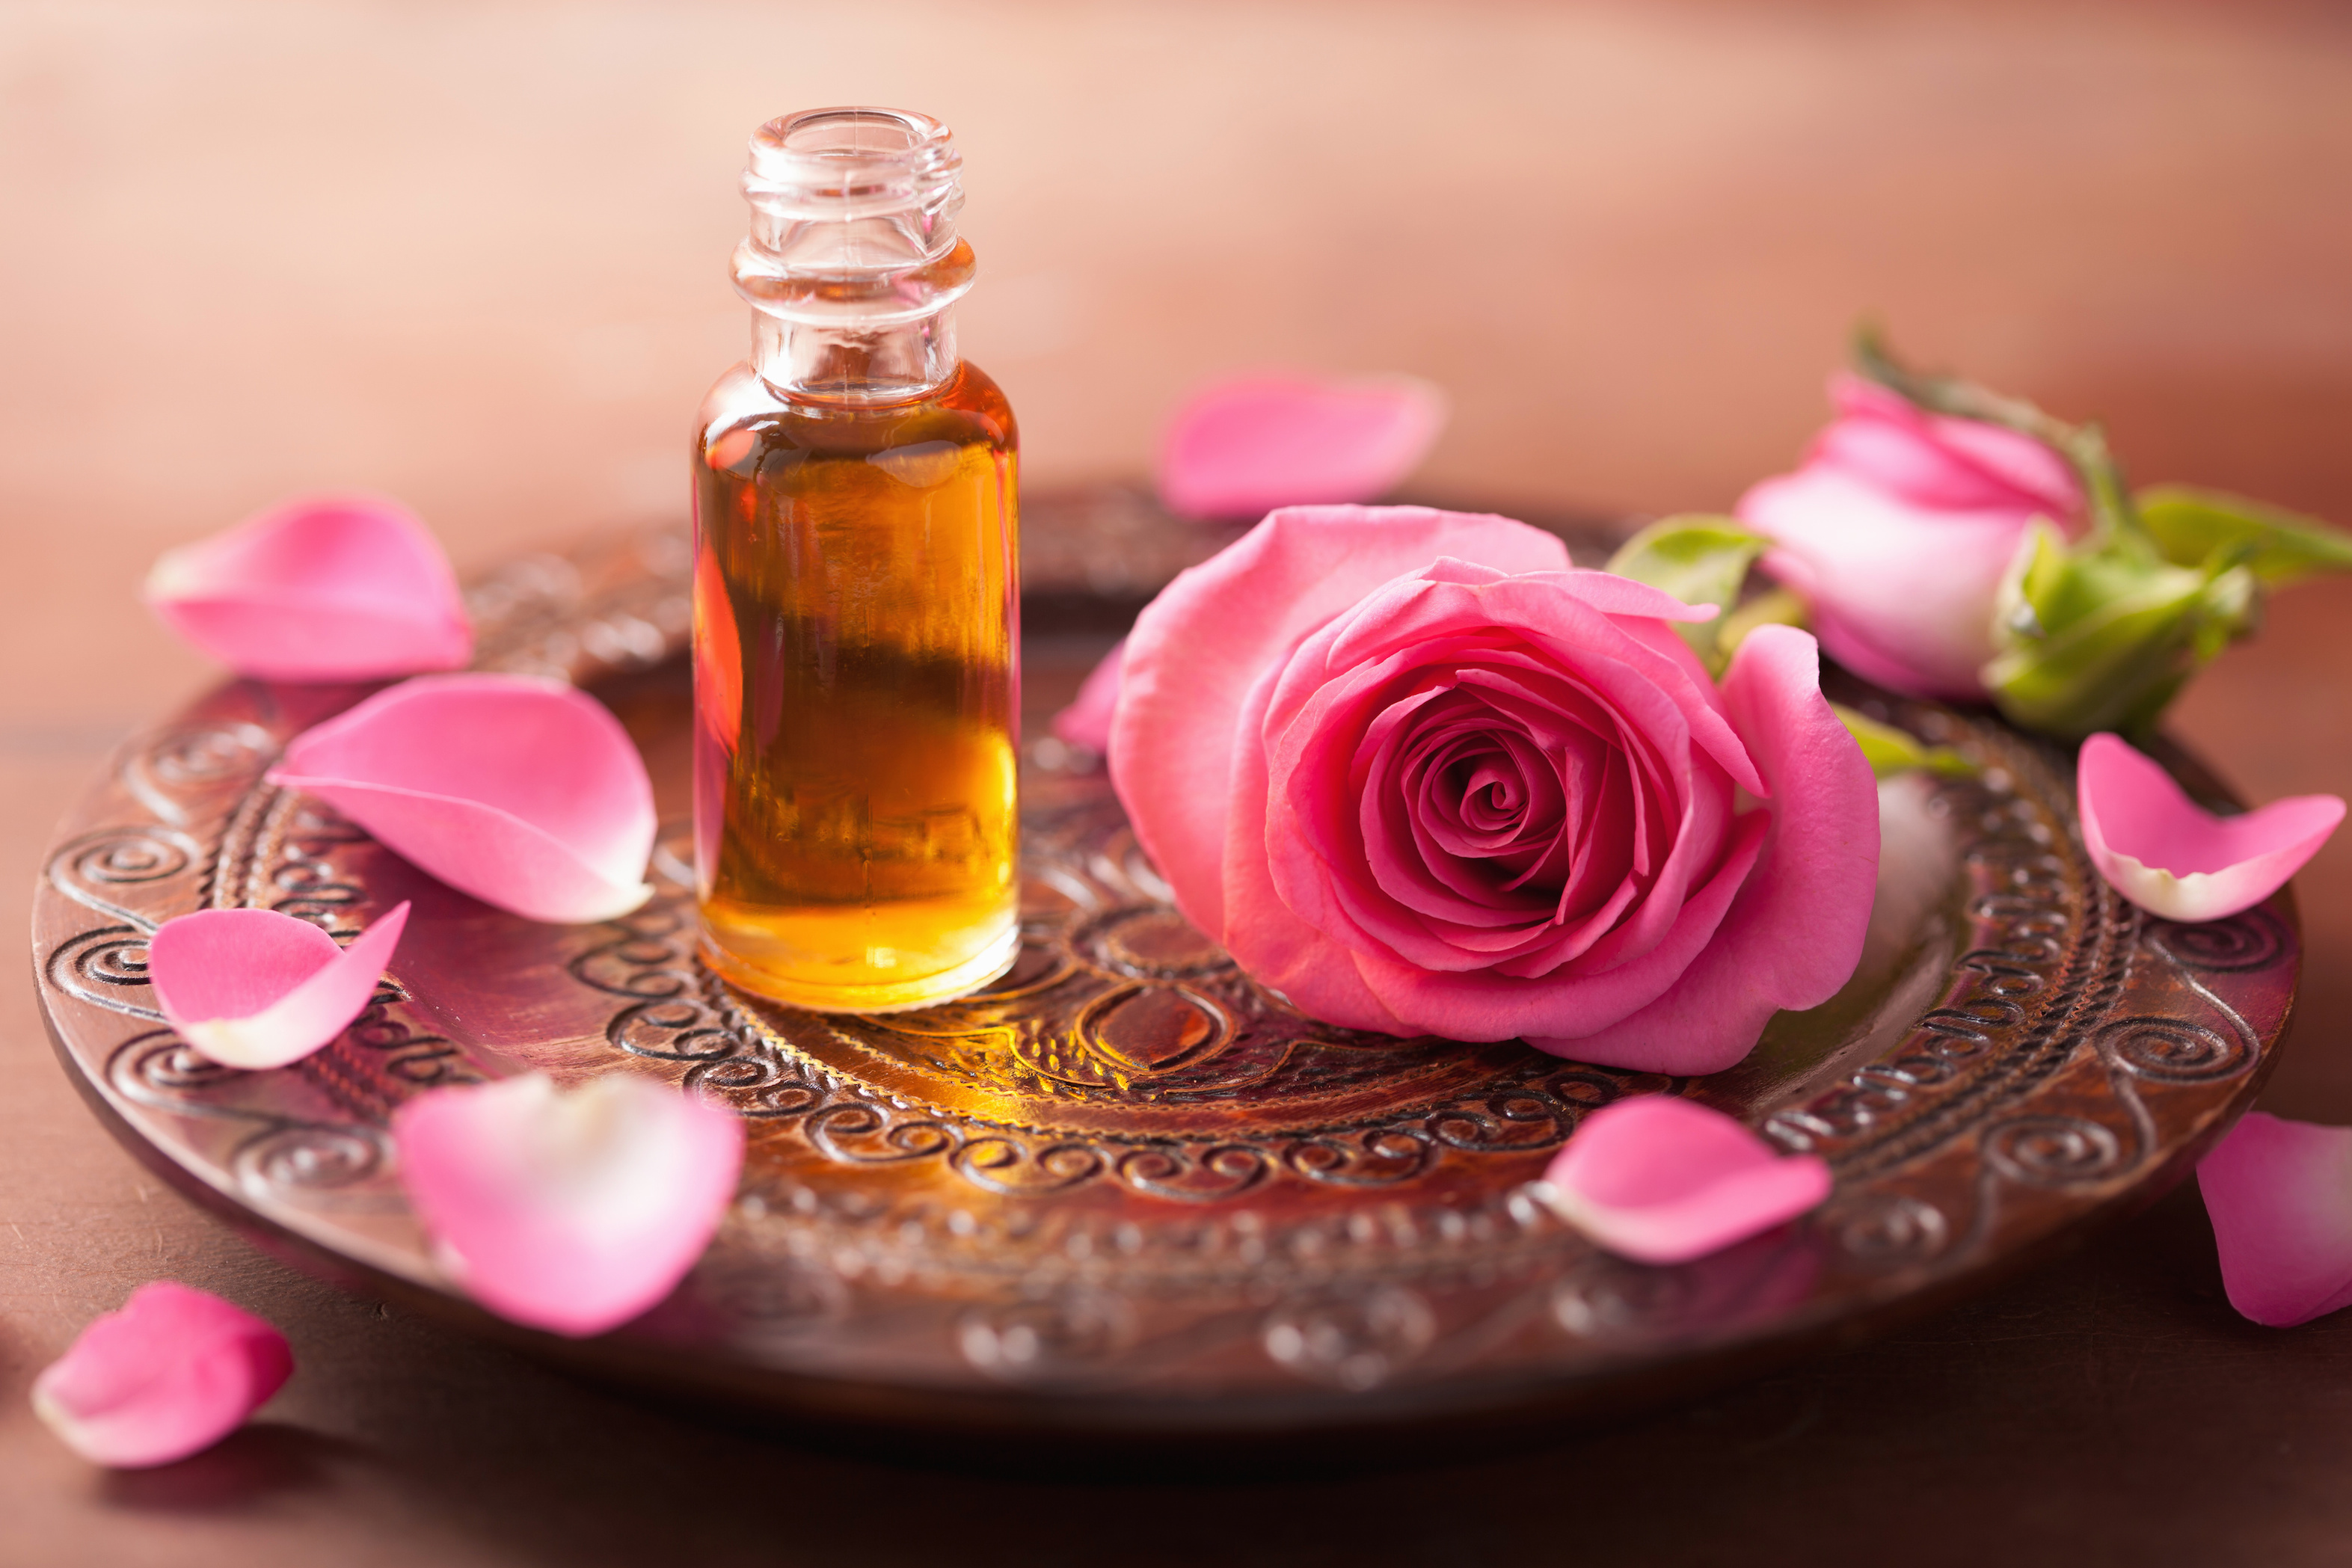 Luxury Facial Oils with Natural Ingredients - The Beauty Hero